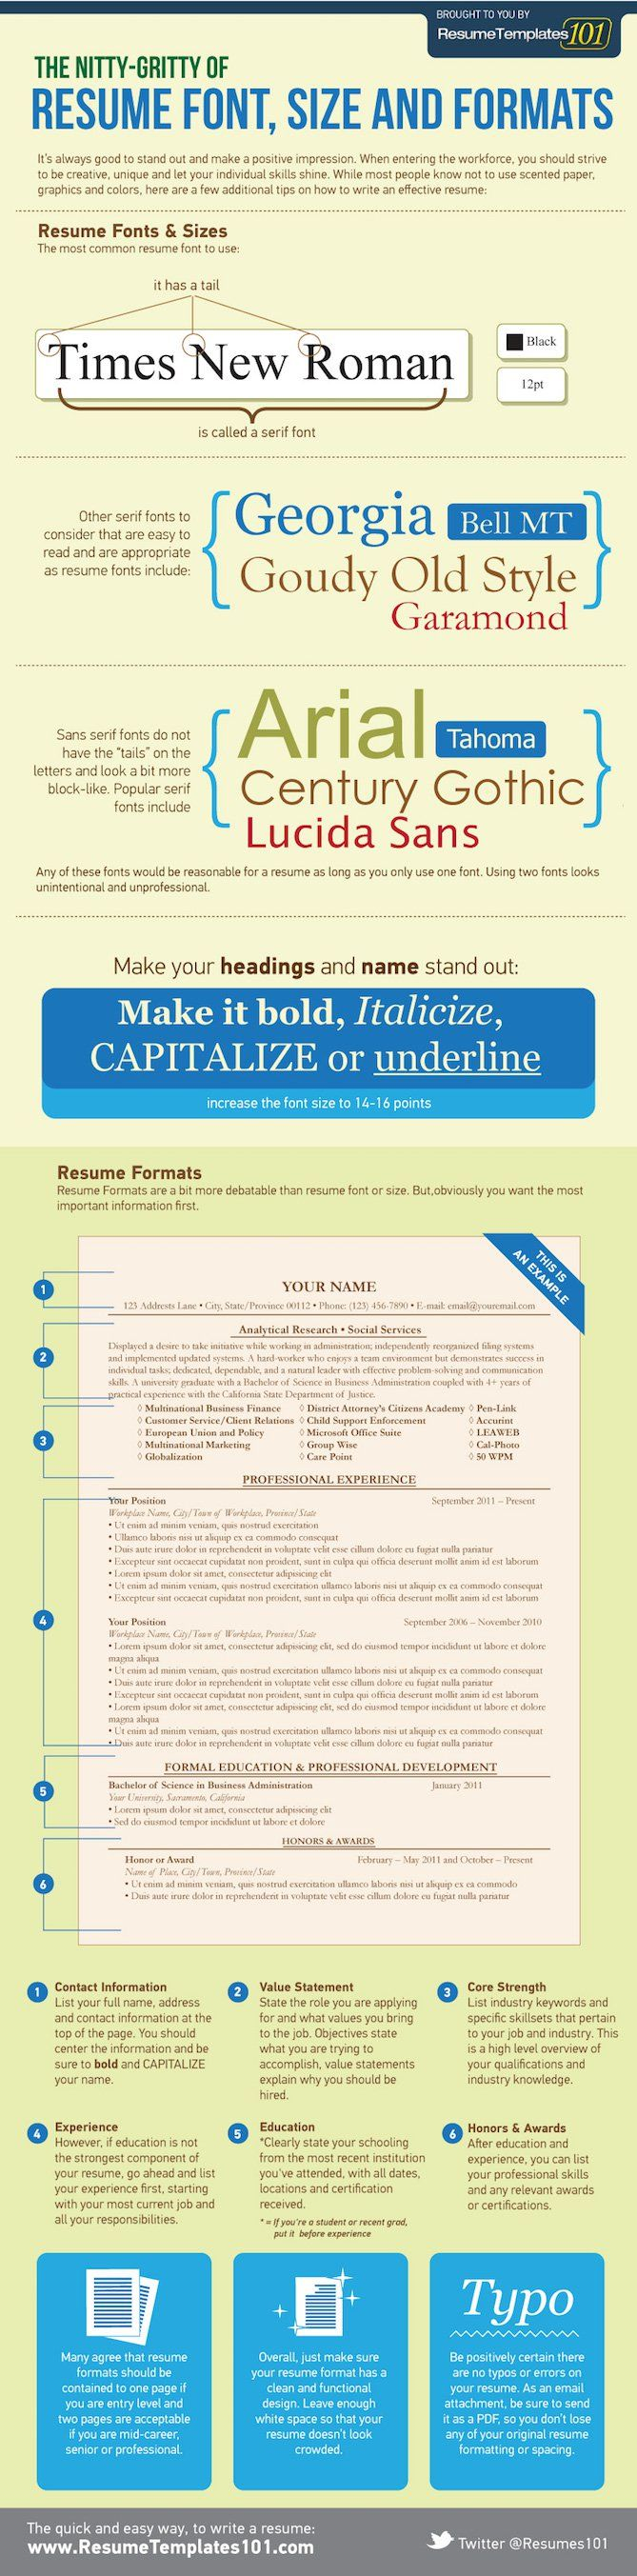 Resume Format Tips You Need to Know in 2020 [Sample